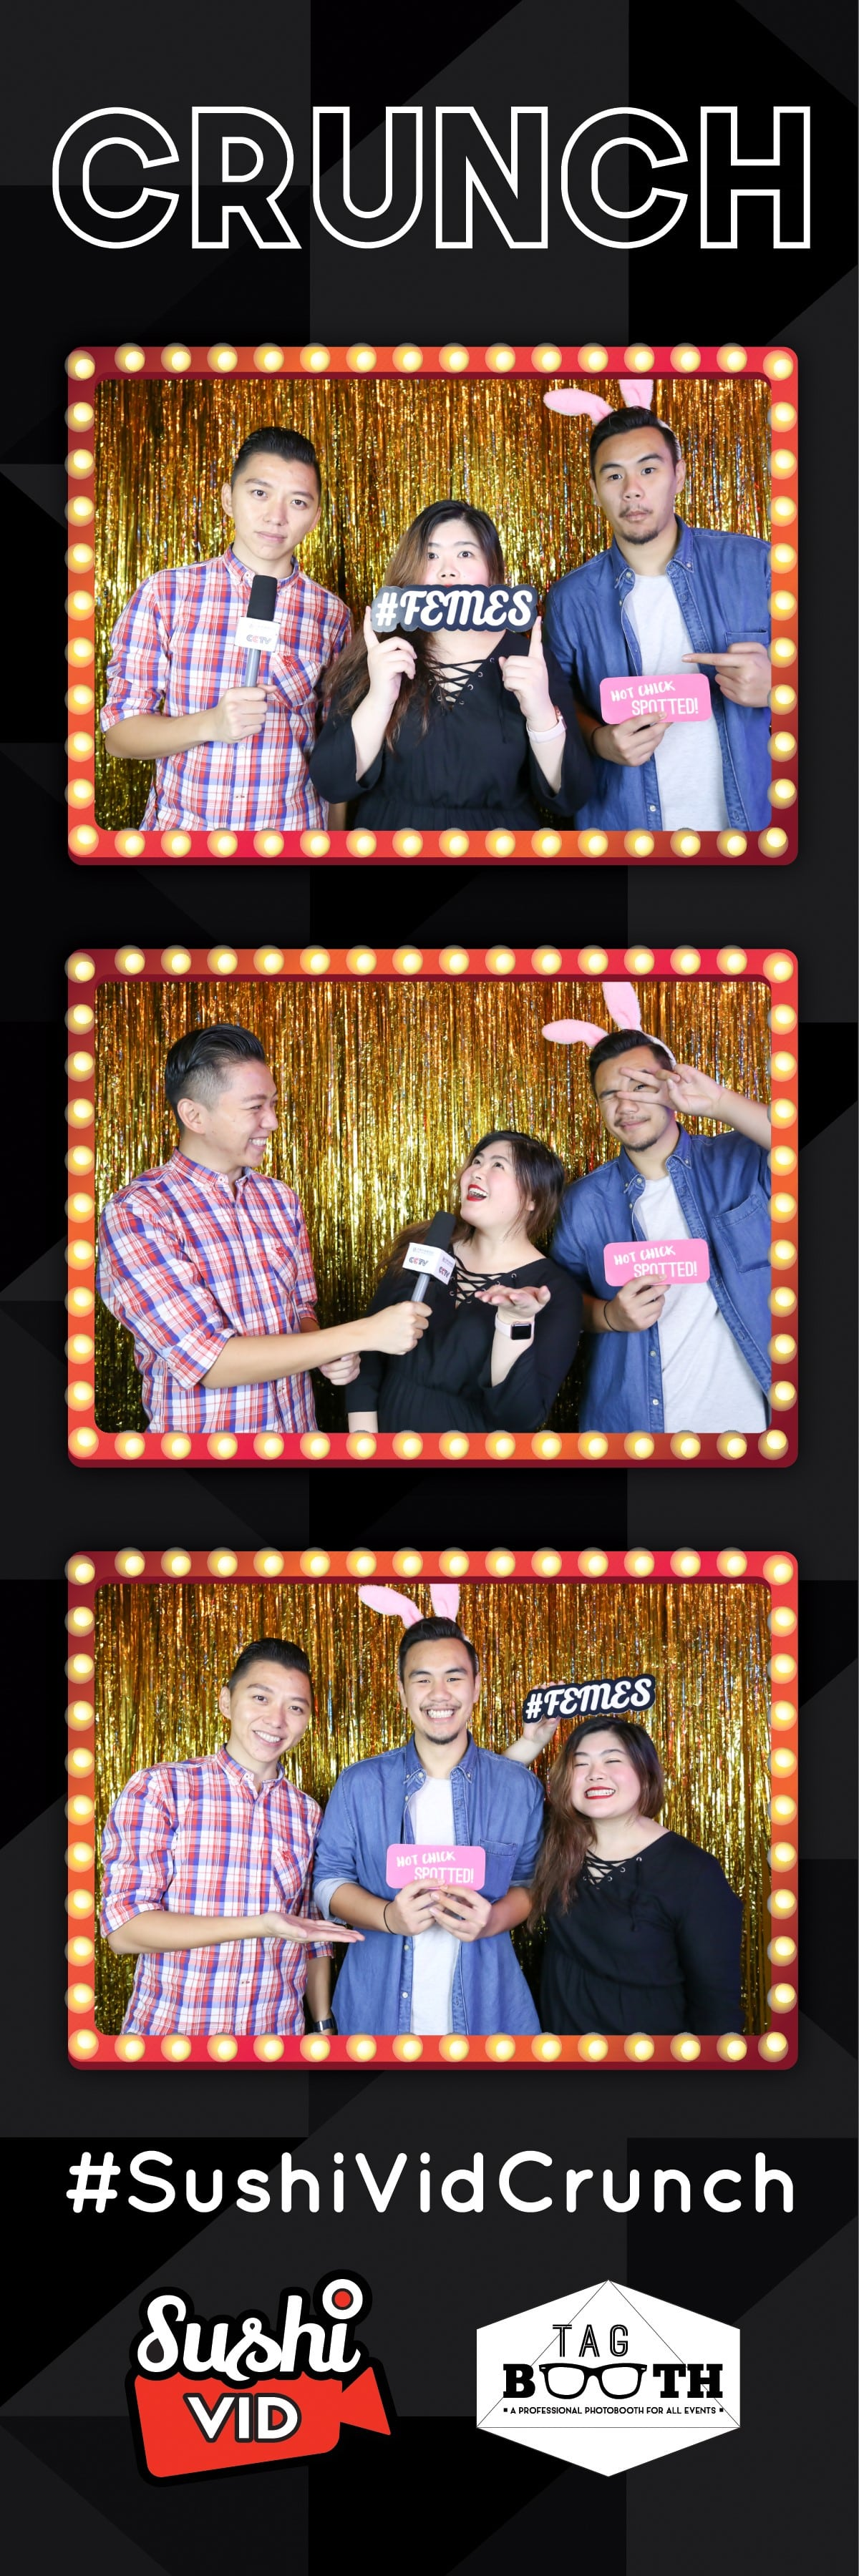 Sushivid+crunch+tagbooth1+30